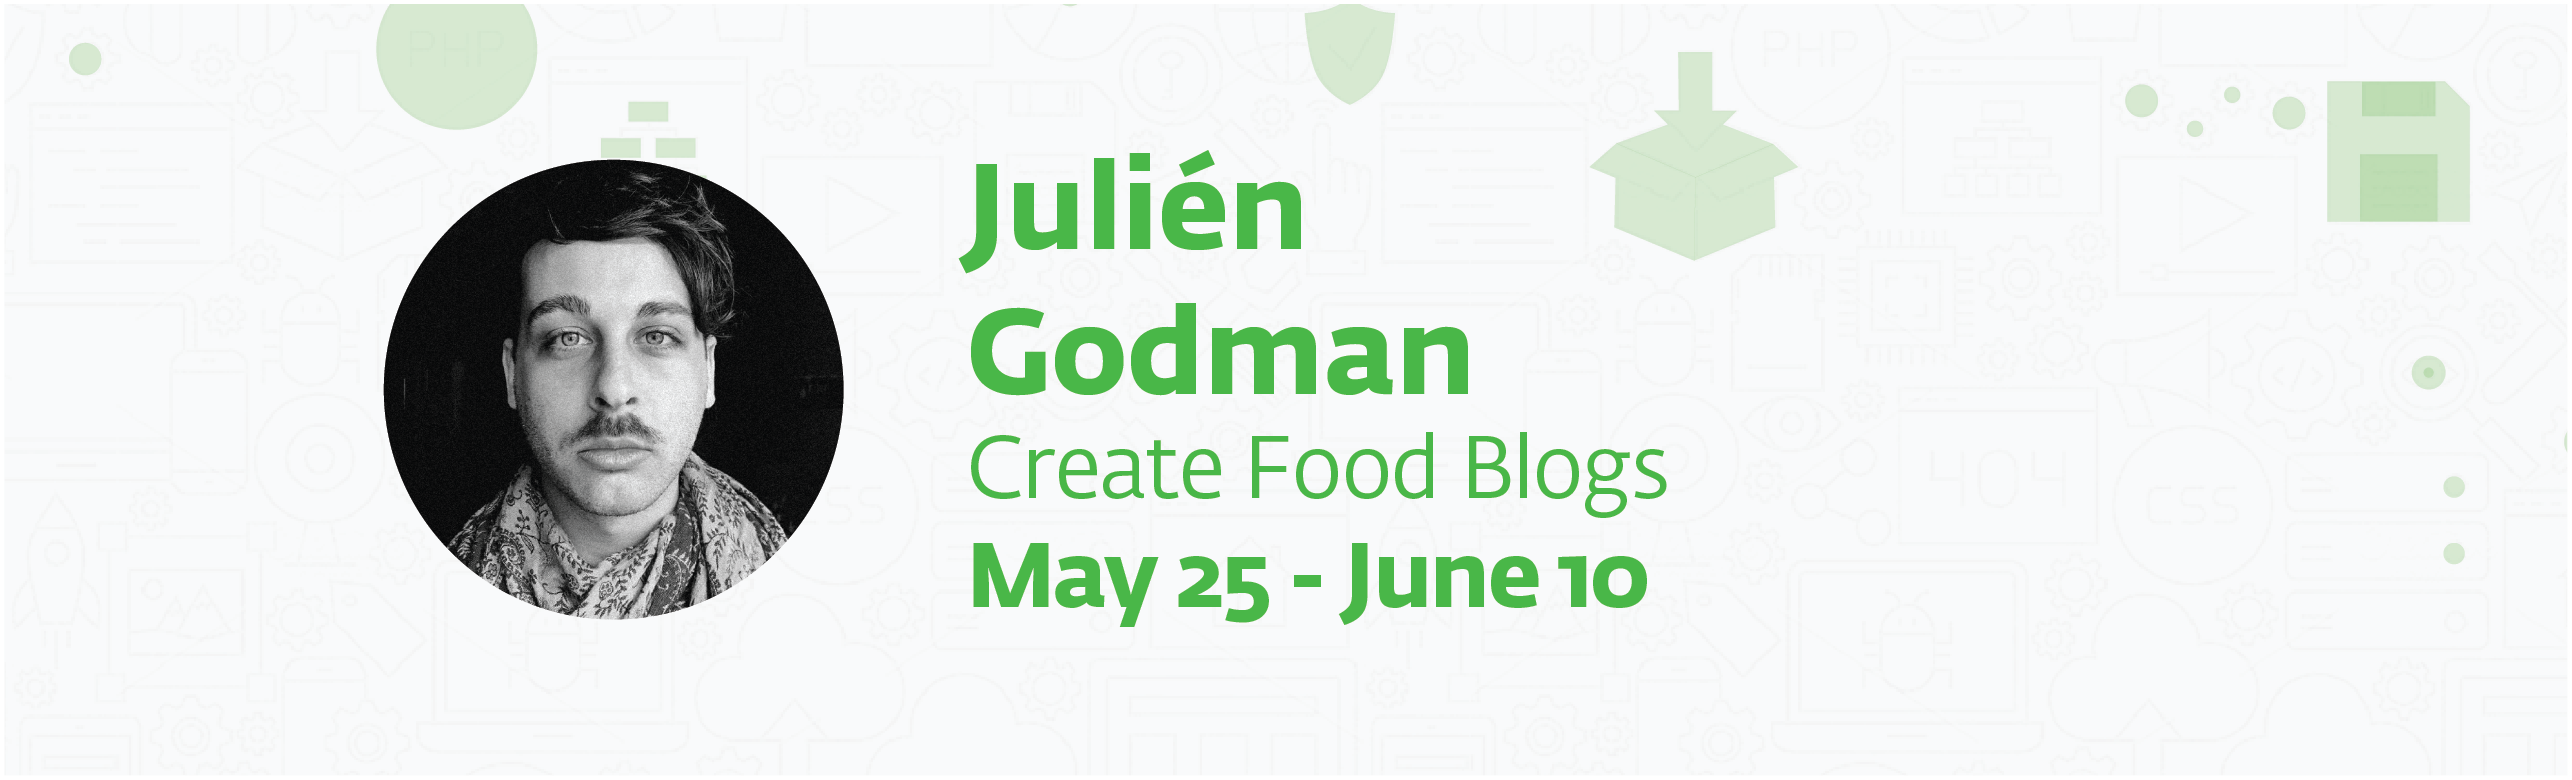 each page 30 - Create food blogs with Julién Godman